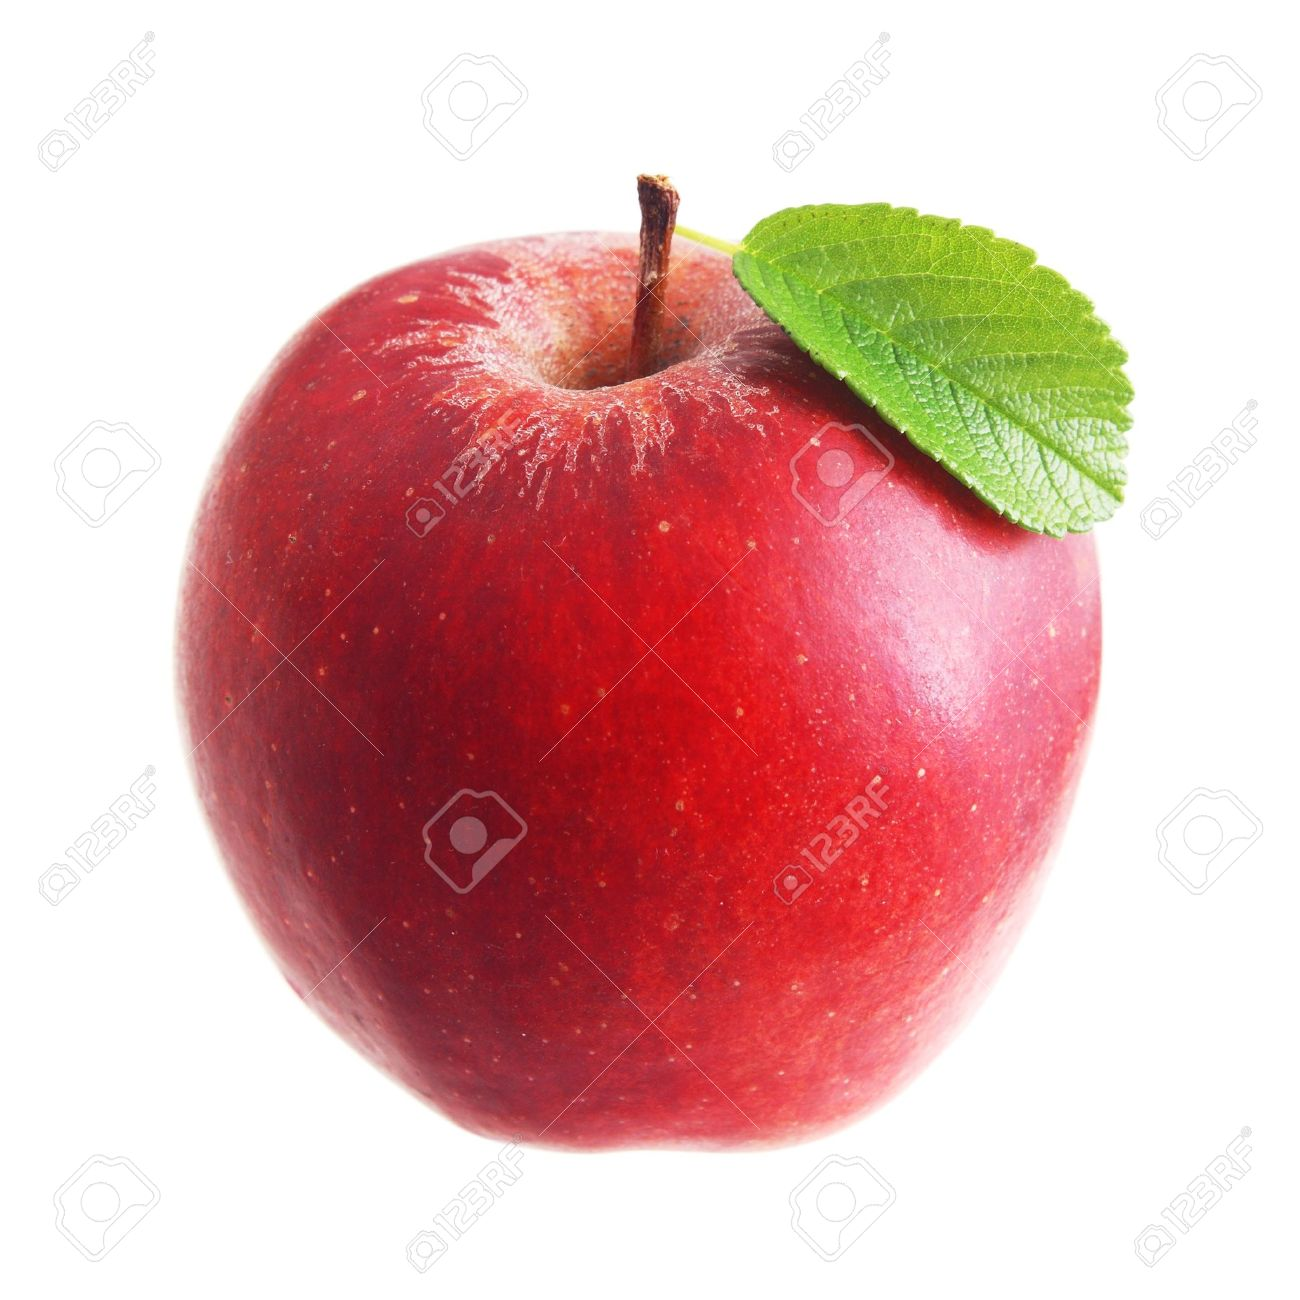 Red apple with leaf isolated Stock Photo - 20584840